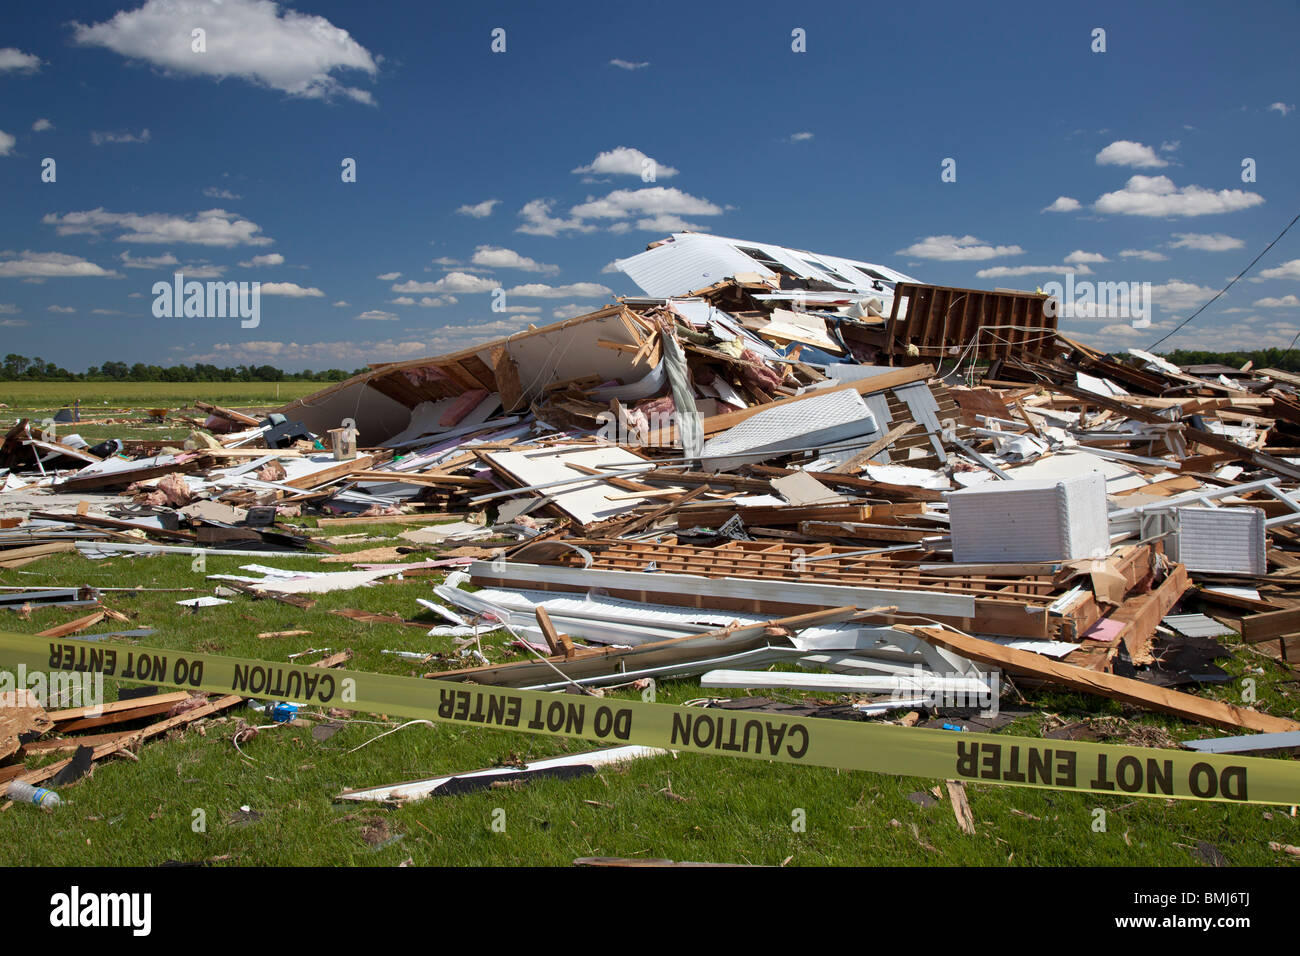 Dundee, Michigan - A house destroyed by a tornado. - Stock Image